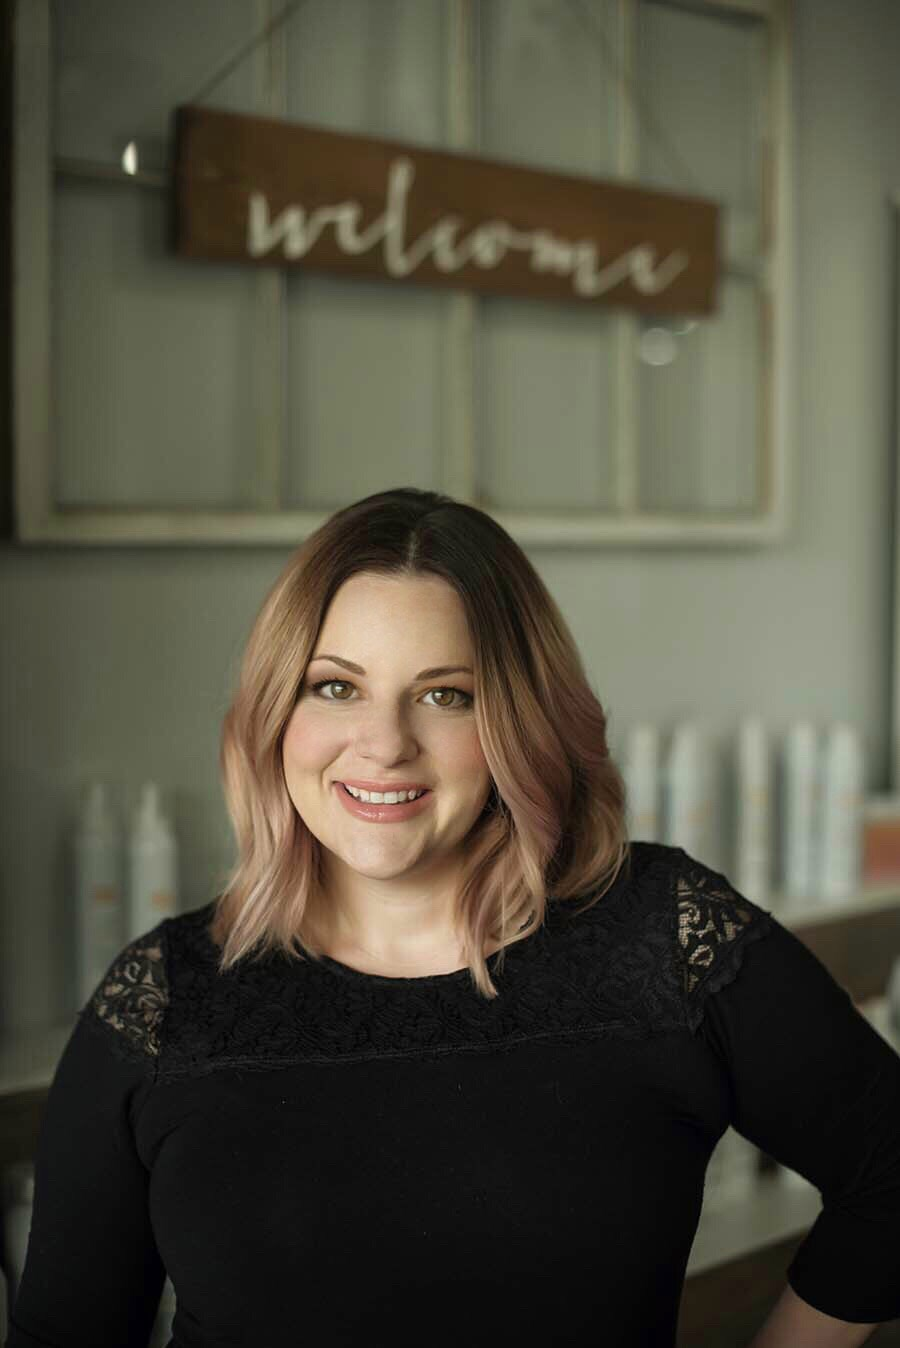 Cynthia Sally   Owner and Lead Esthetician opened Blend in Lisle in 2012 after operating a freelance wedding beauty business for 10 years.  She expanded her business and now solely focuses on the salon, her team and esthetics.